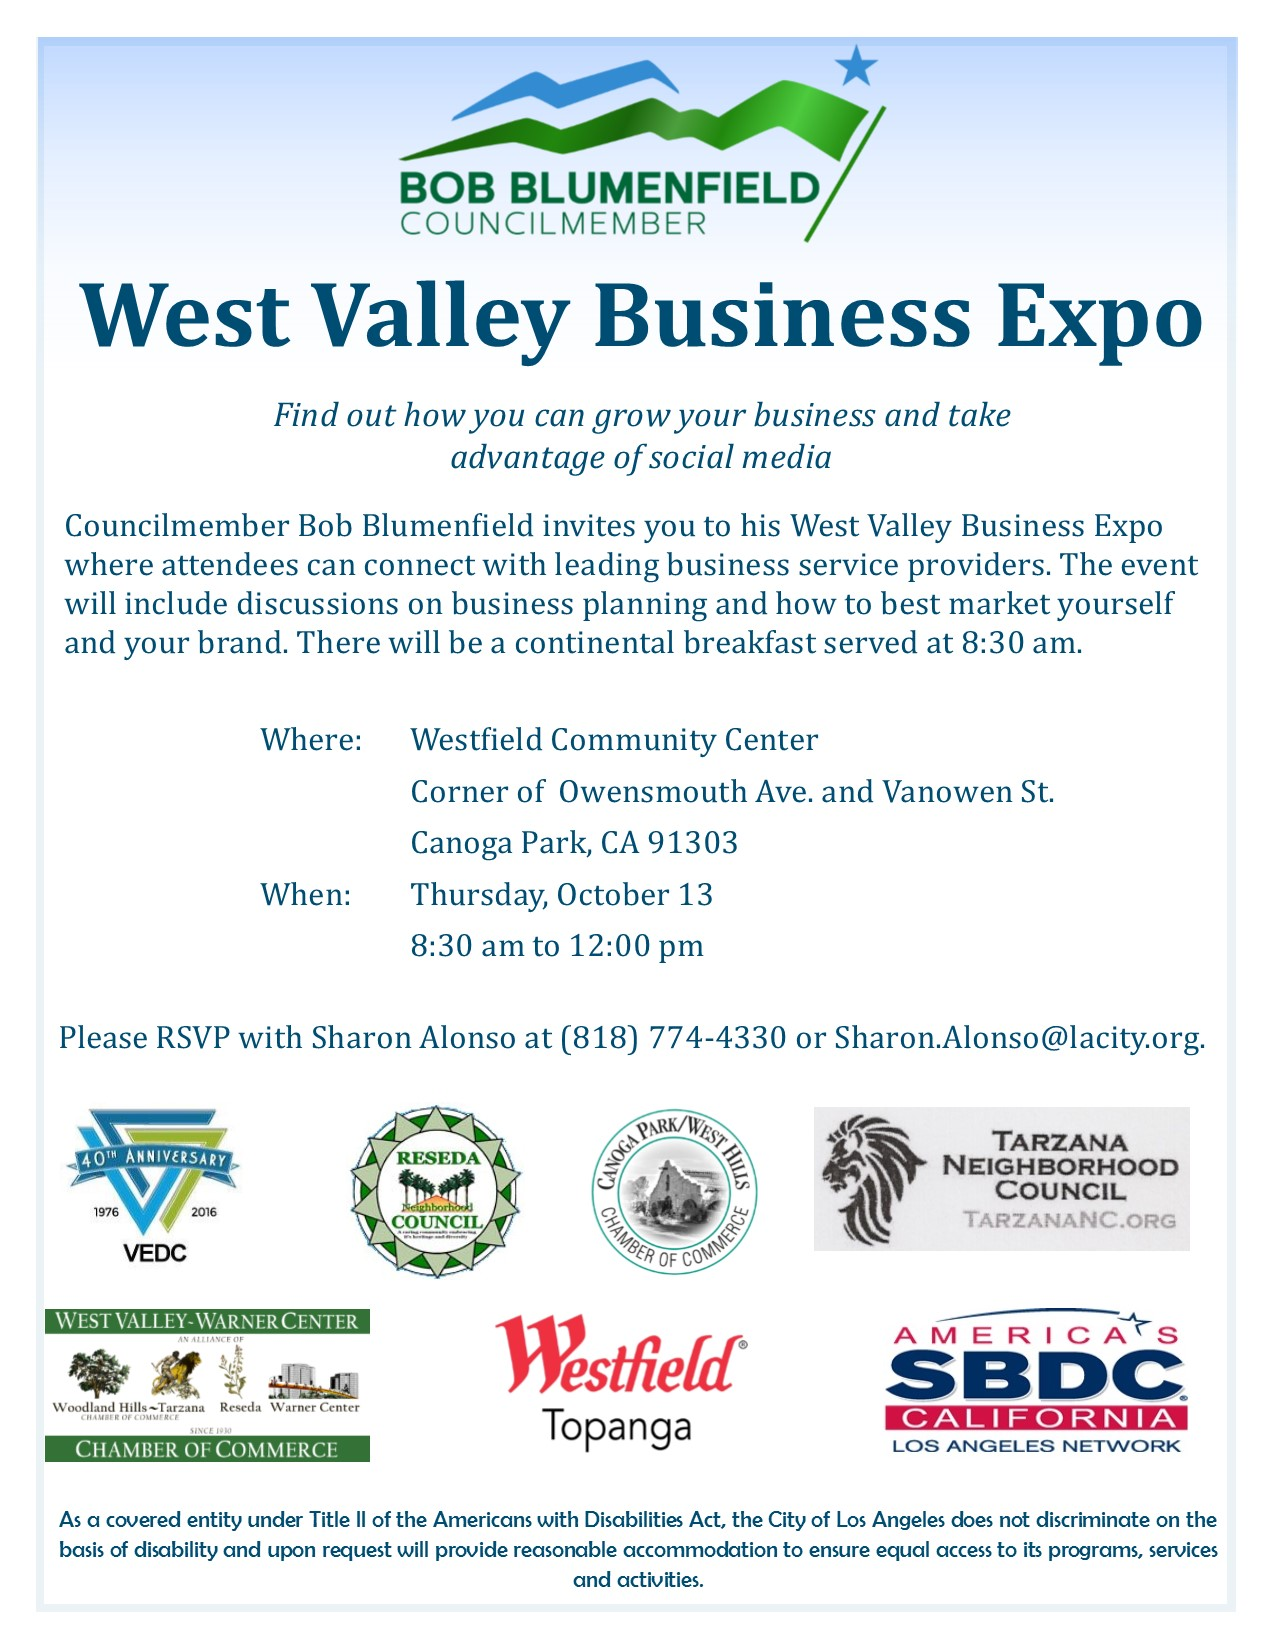 West_Valley_Business_EXPO_flyer_with_TNC.jpg